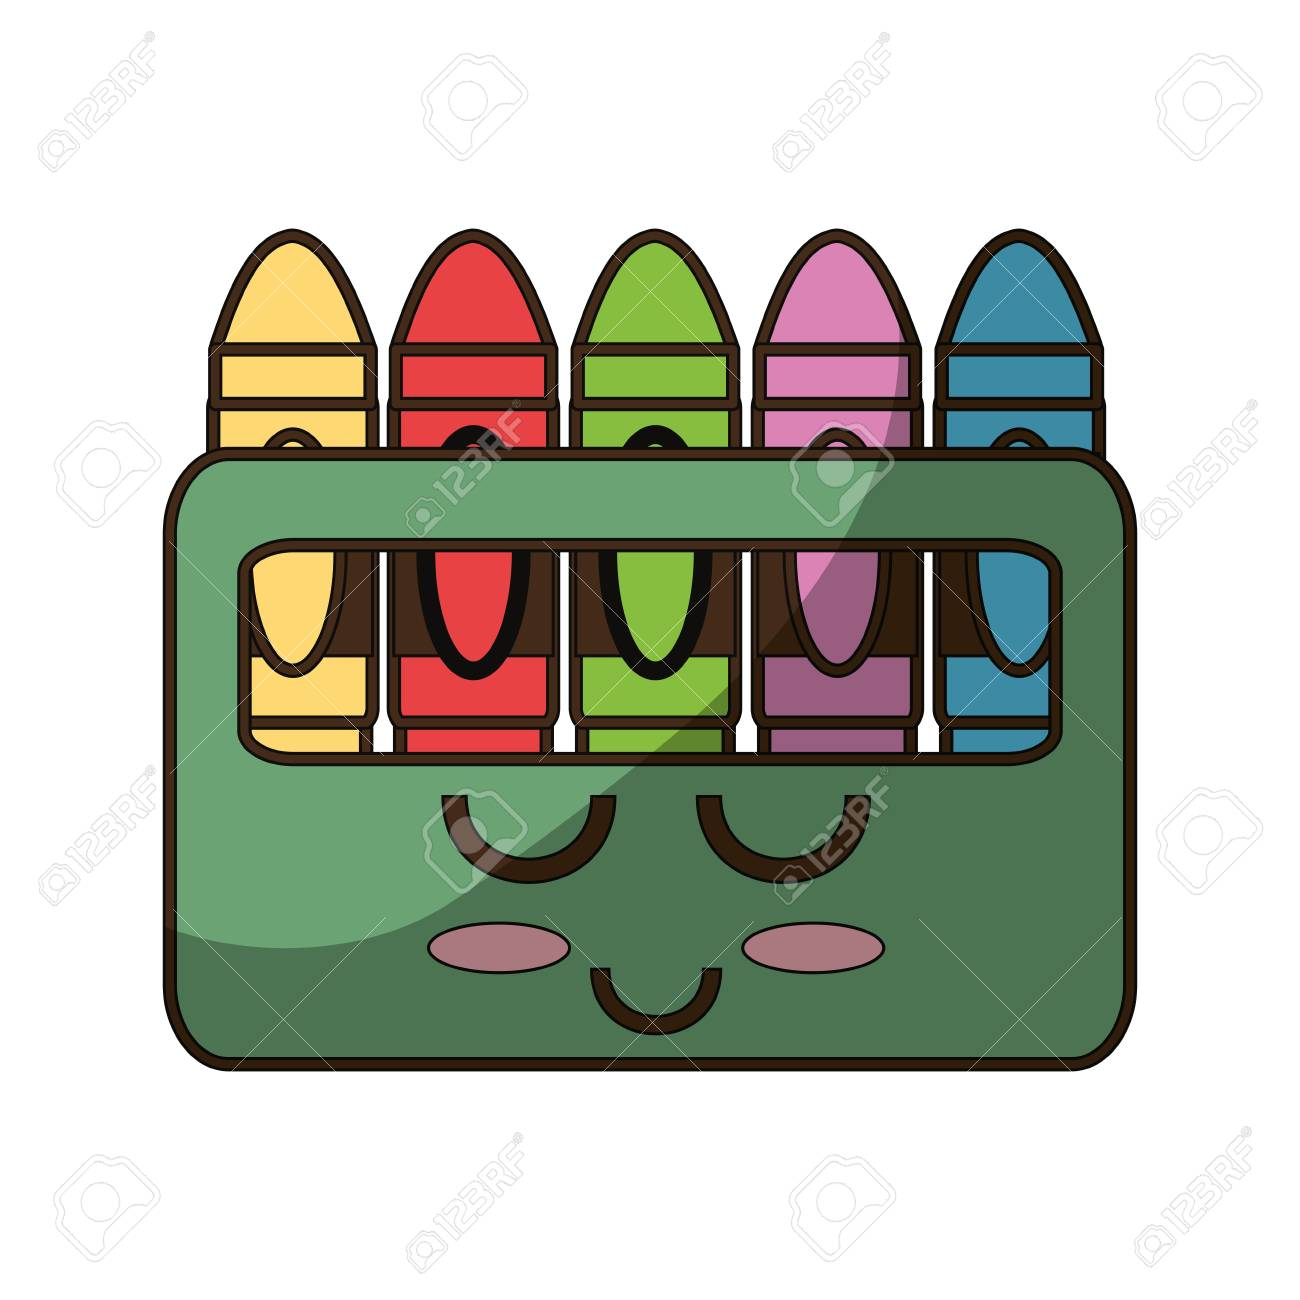 Cute Crayons Cartoon Icon Vector Illustration Graphic Design Royalty - Cartoon-pictures-of-crayons